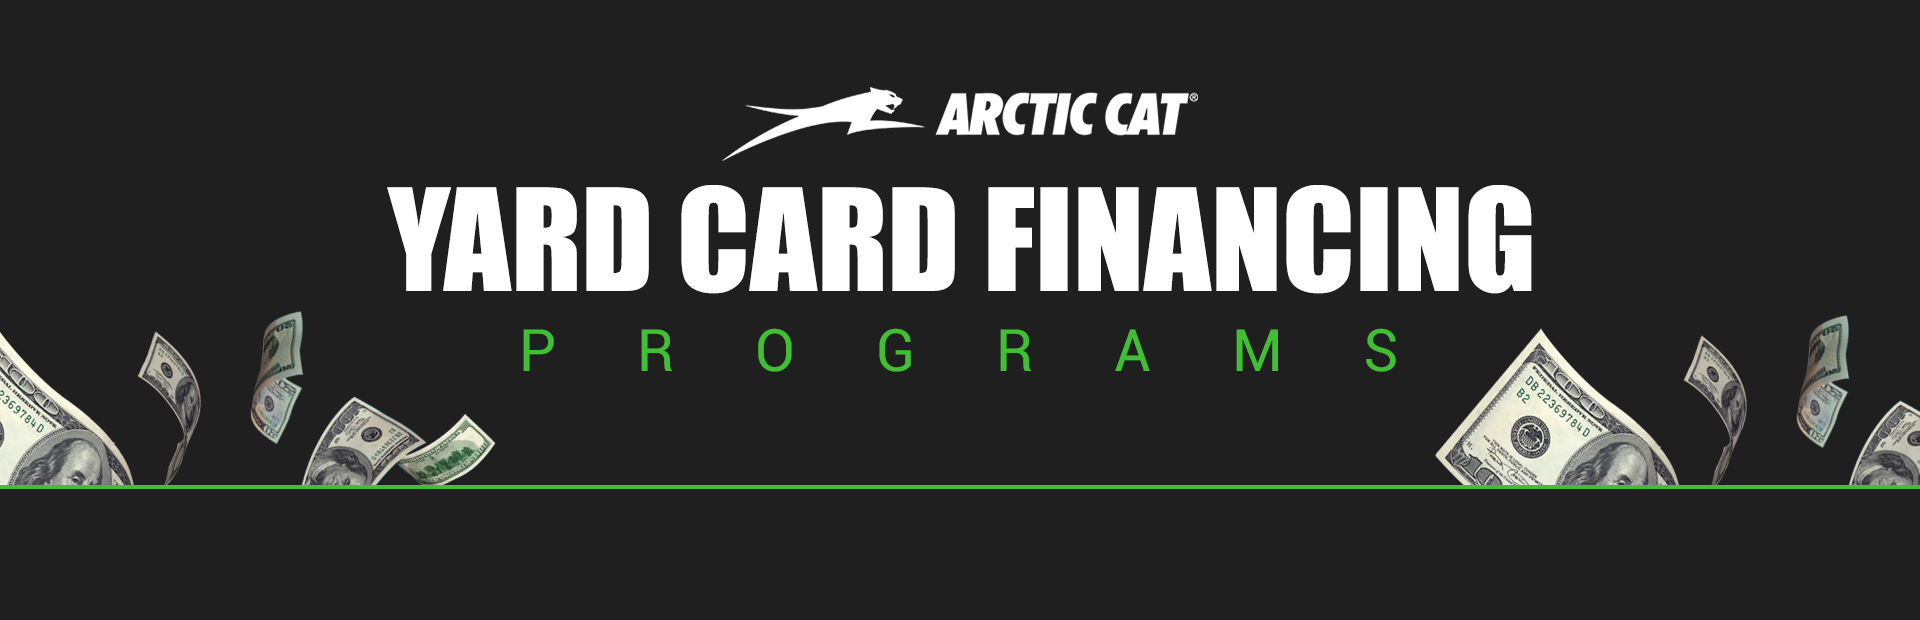 Arctic Cat: Arctic Cat – Yard Card Financing Programs